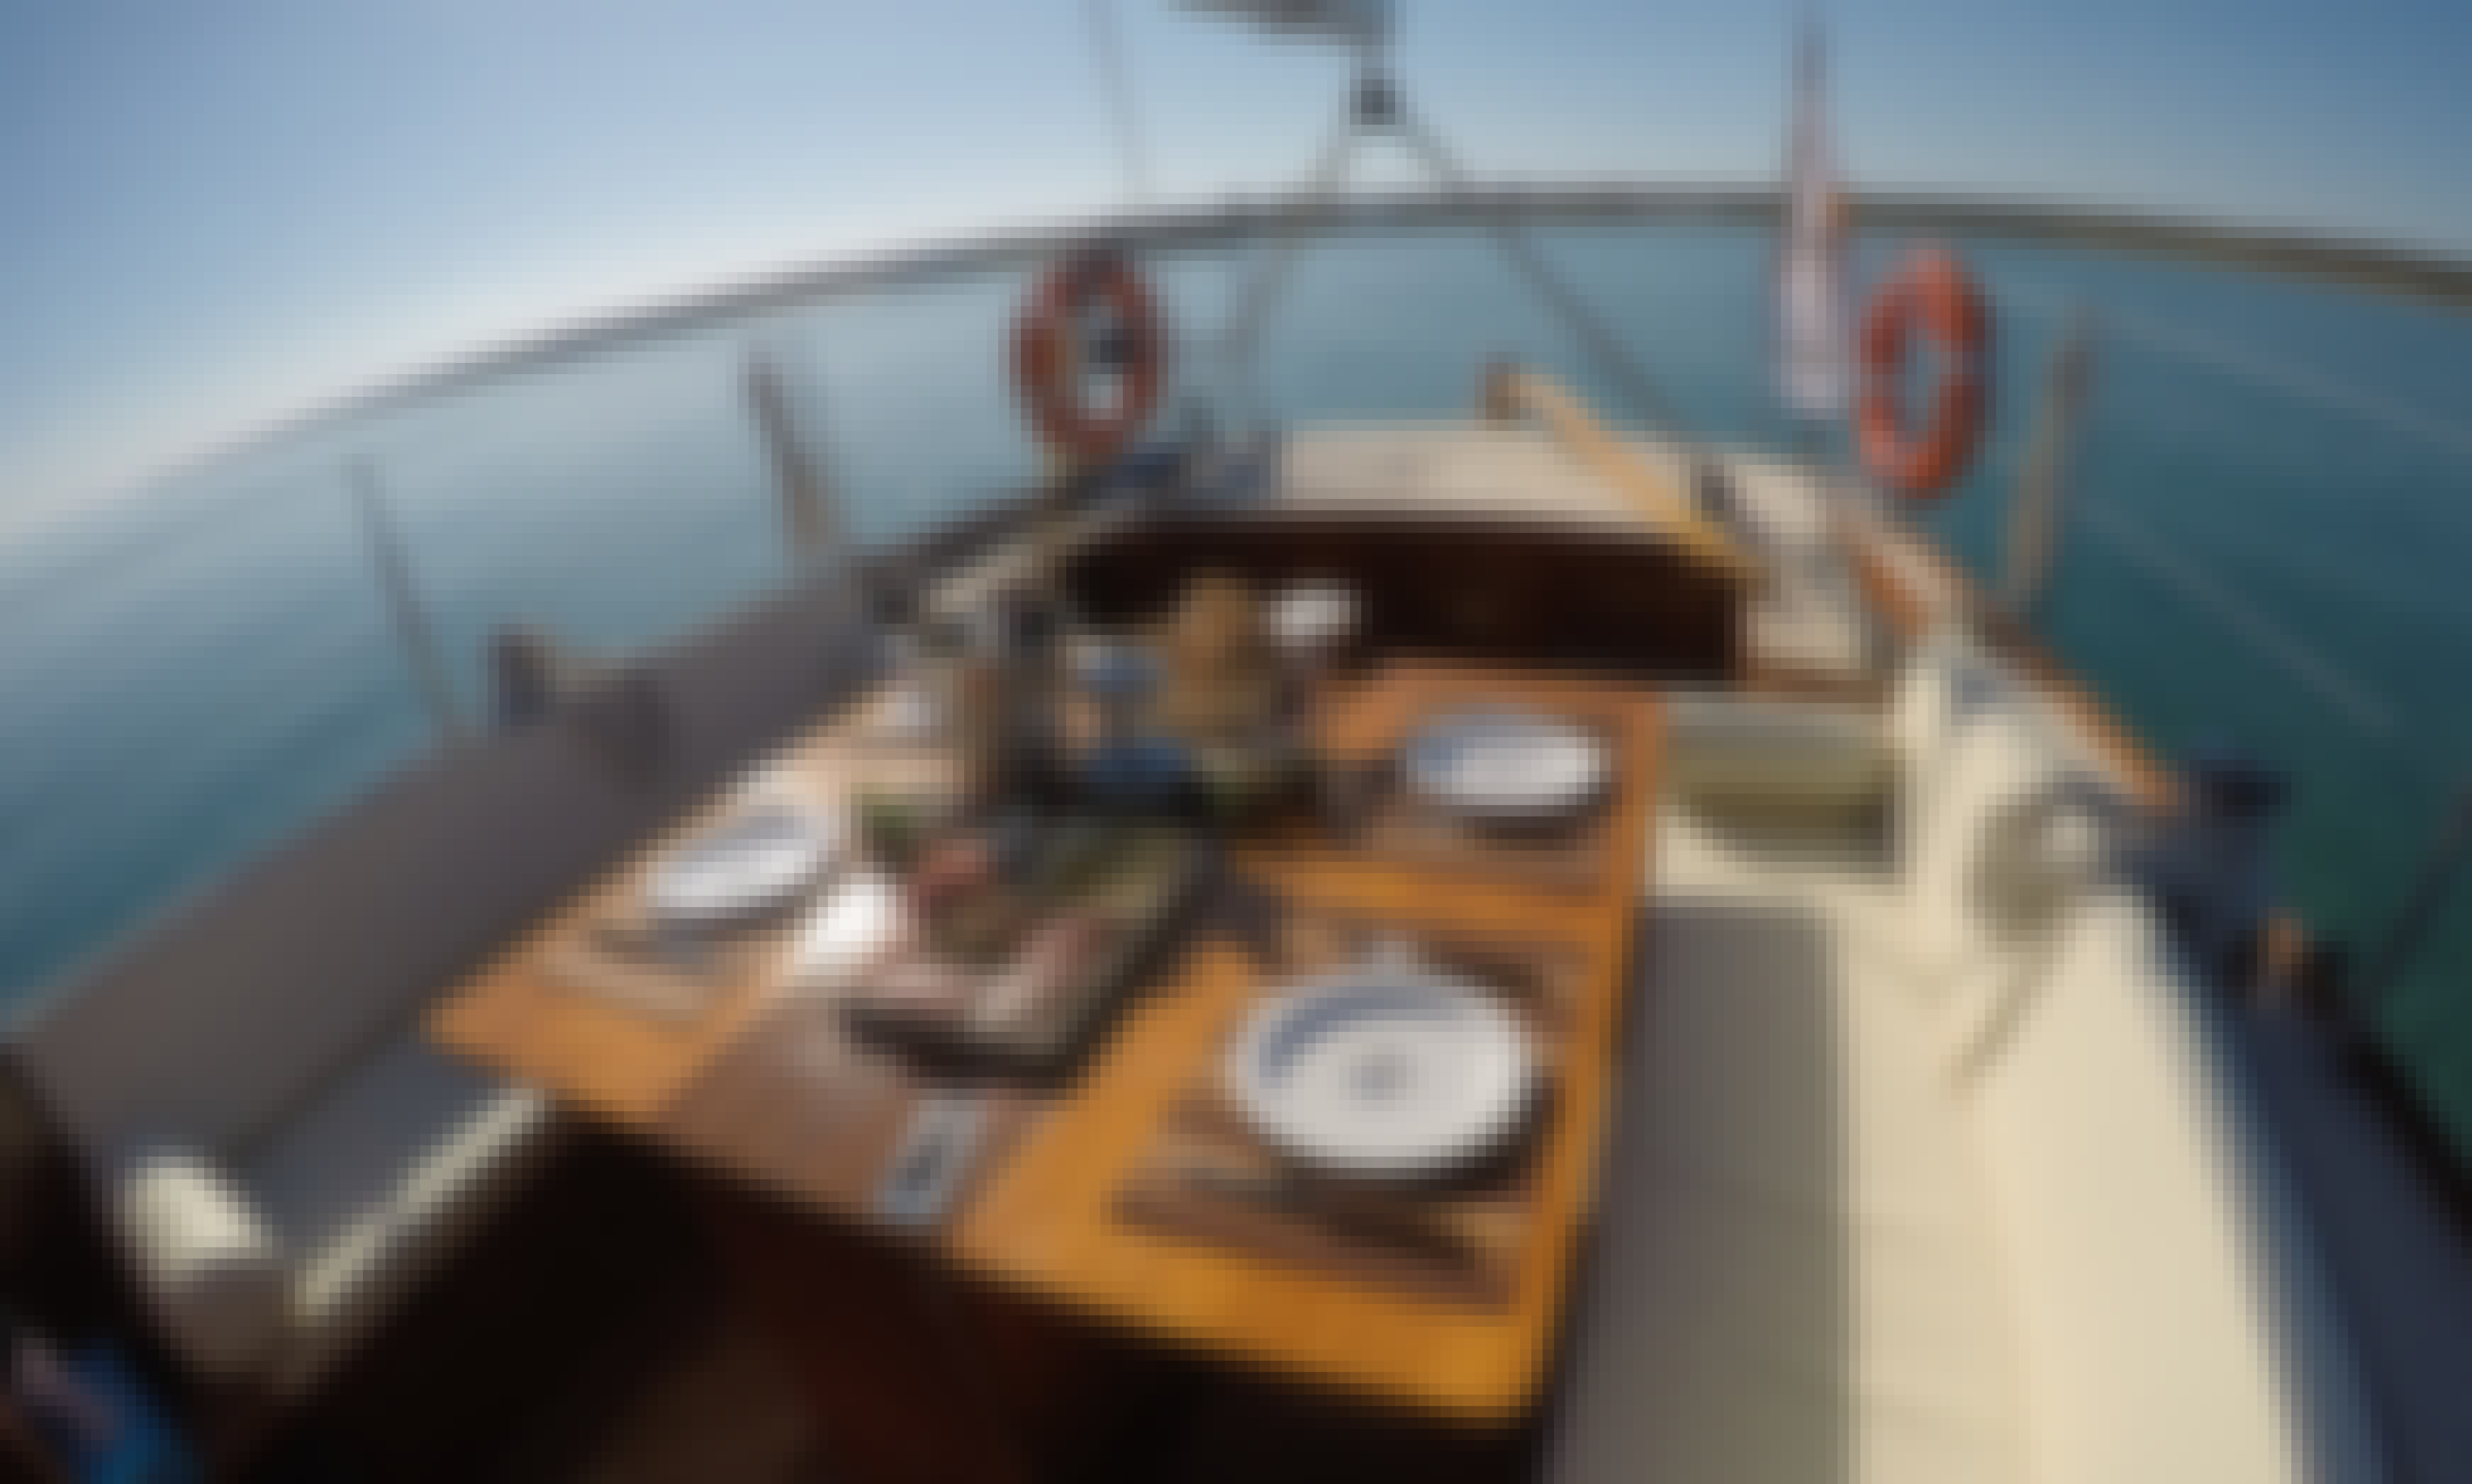 Classic Wooden Sailboat Private Tour in Limassol, Cyprus!